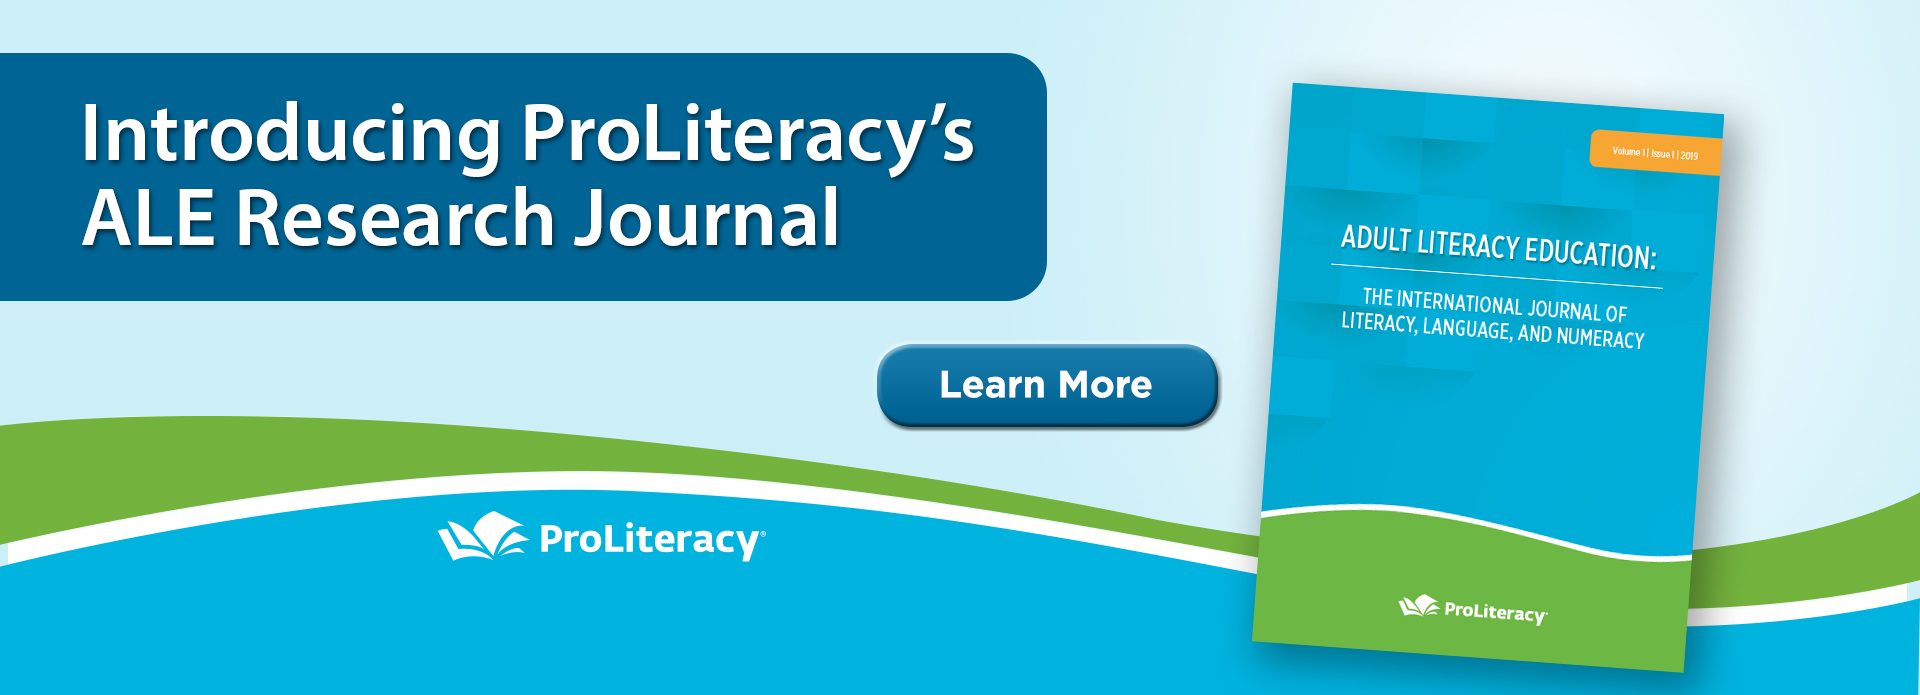 Adult literacy education research journal